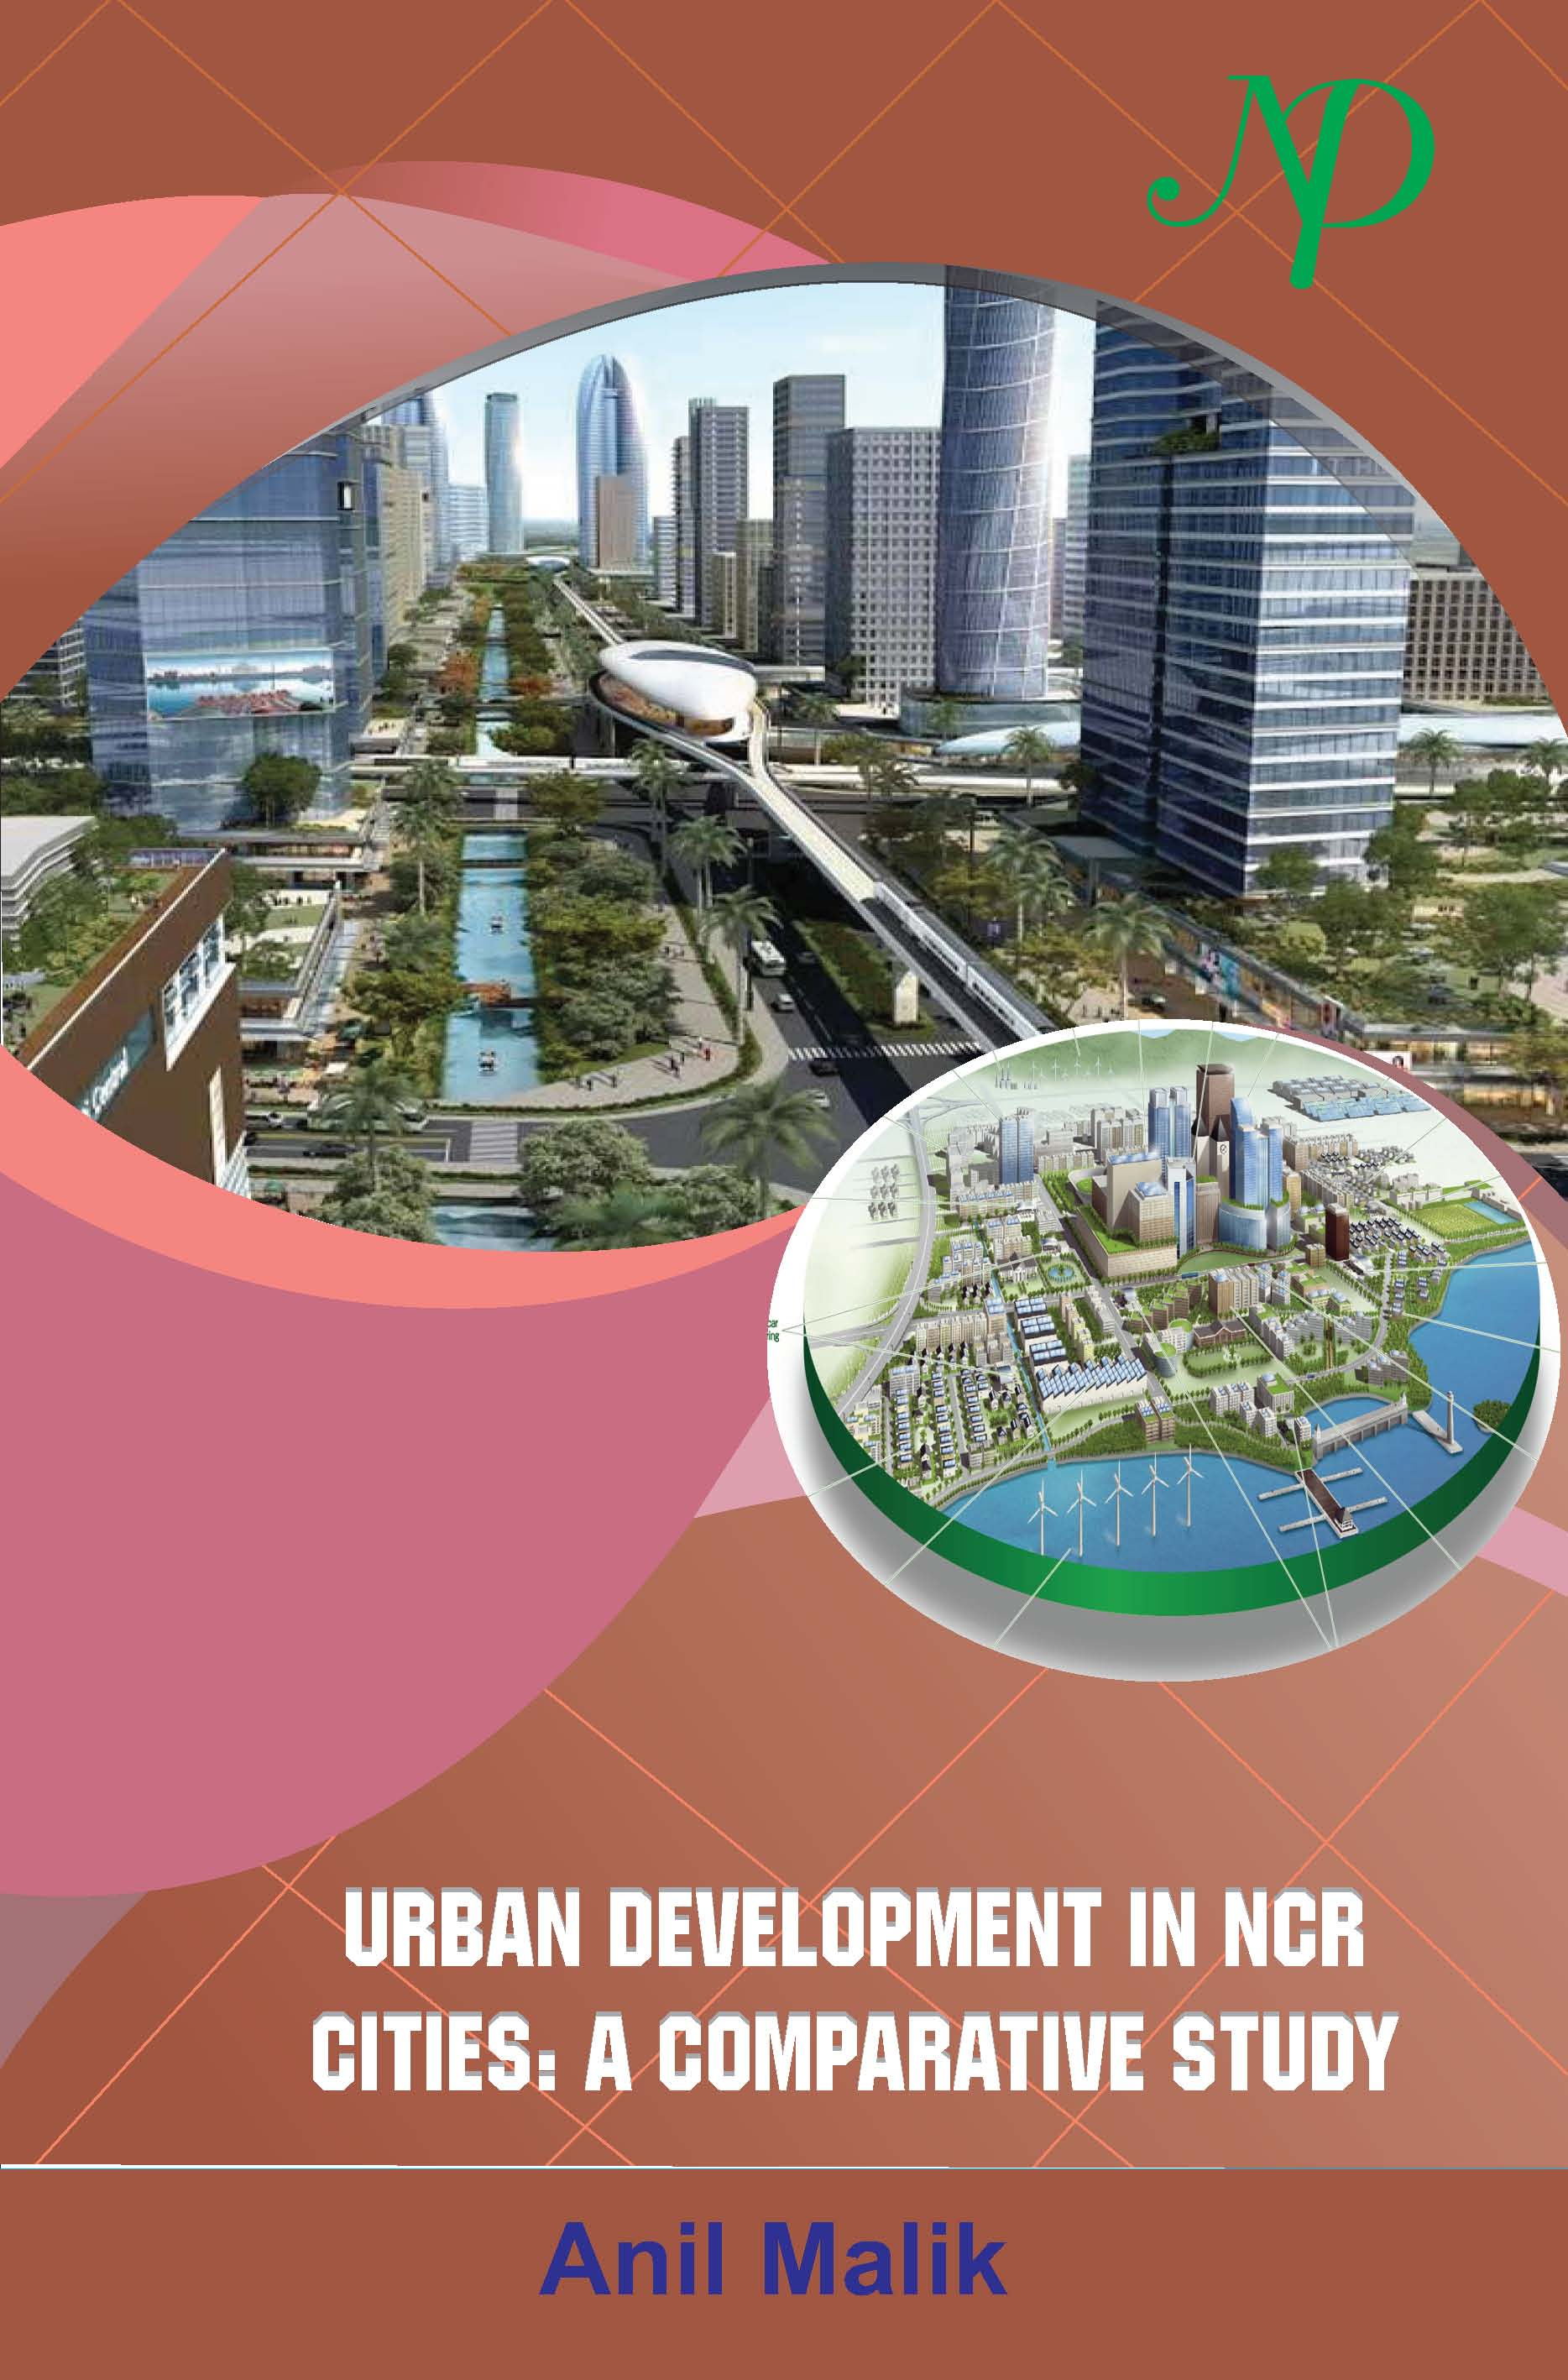 Urban Development in NCR Cities: A Comparative Study